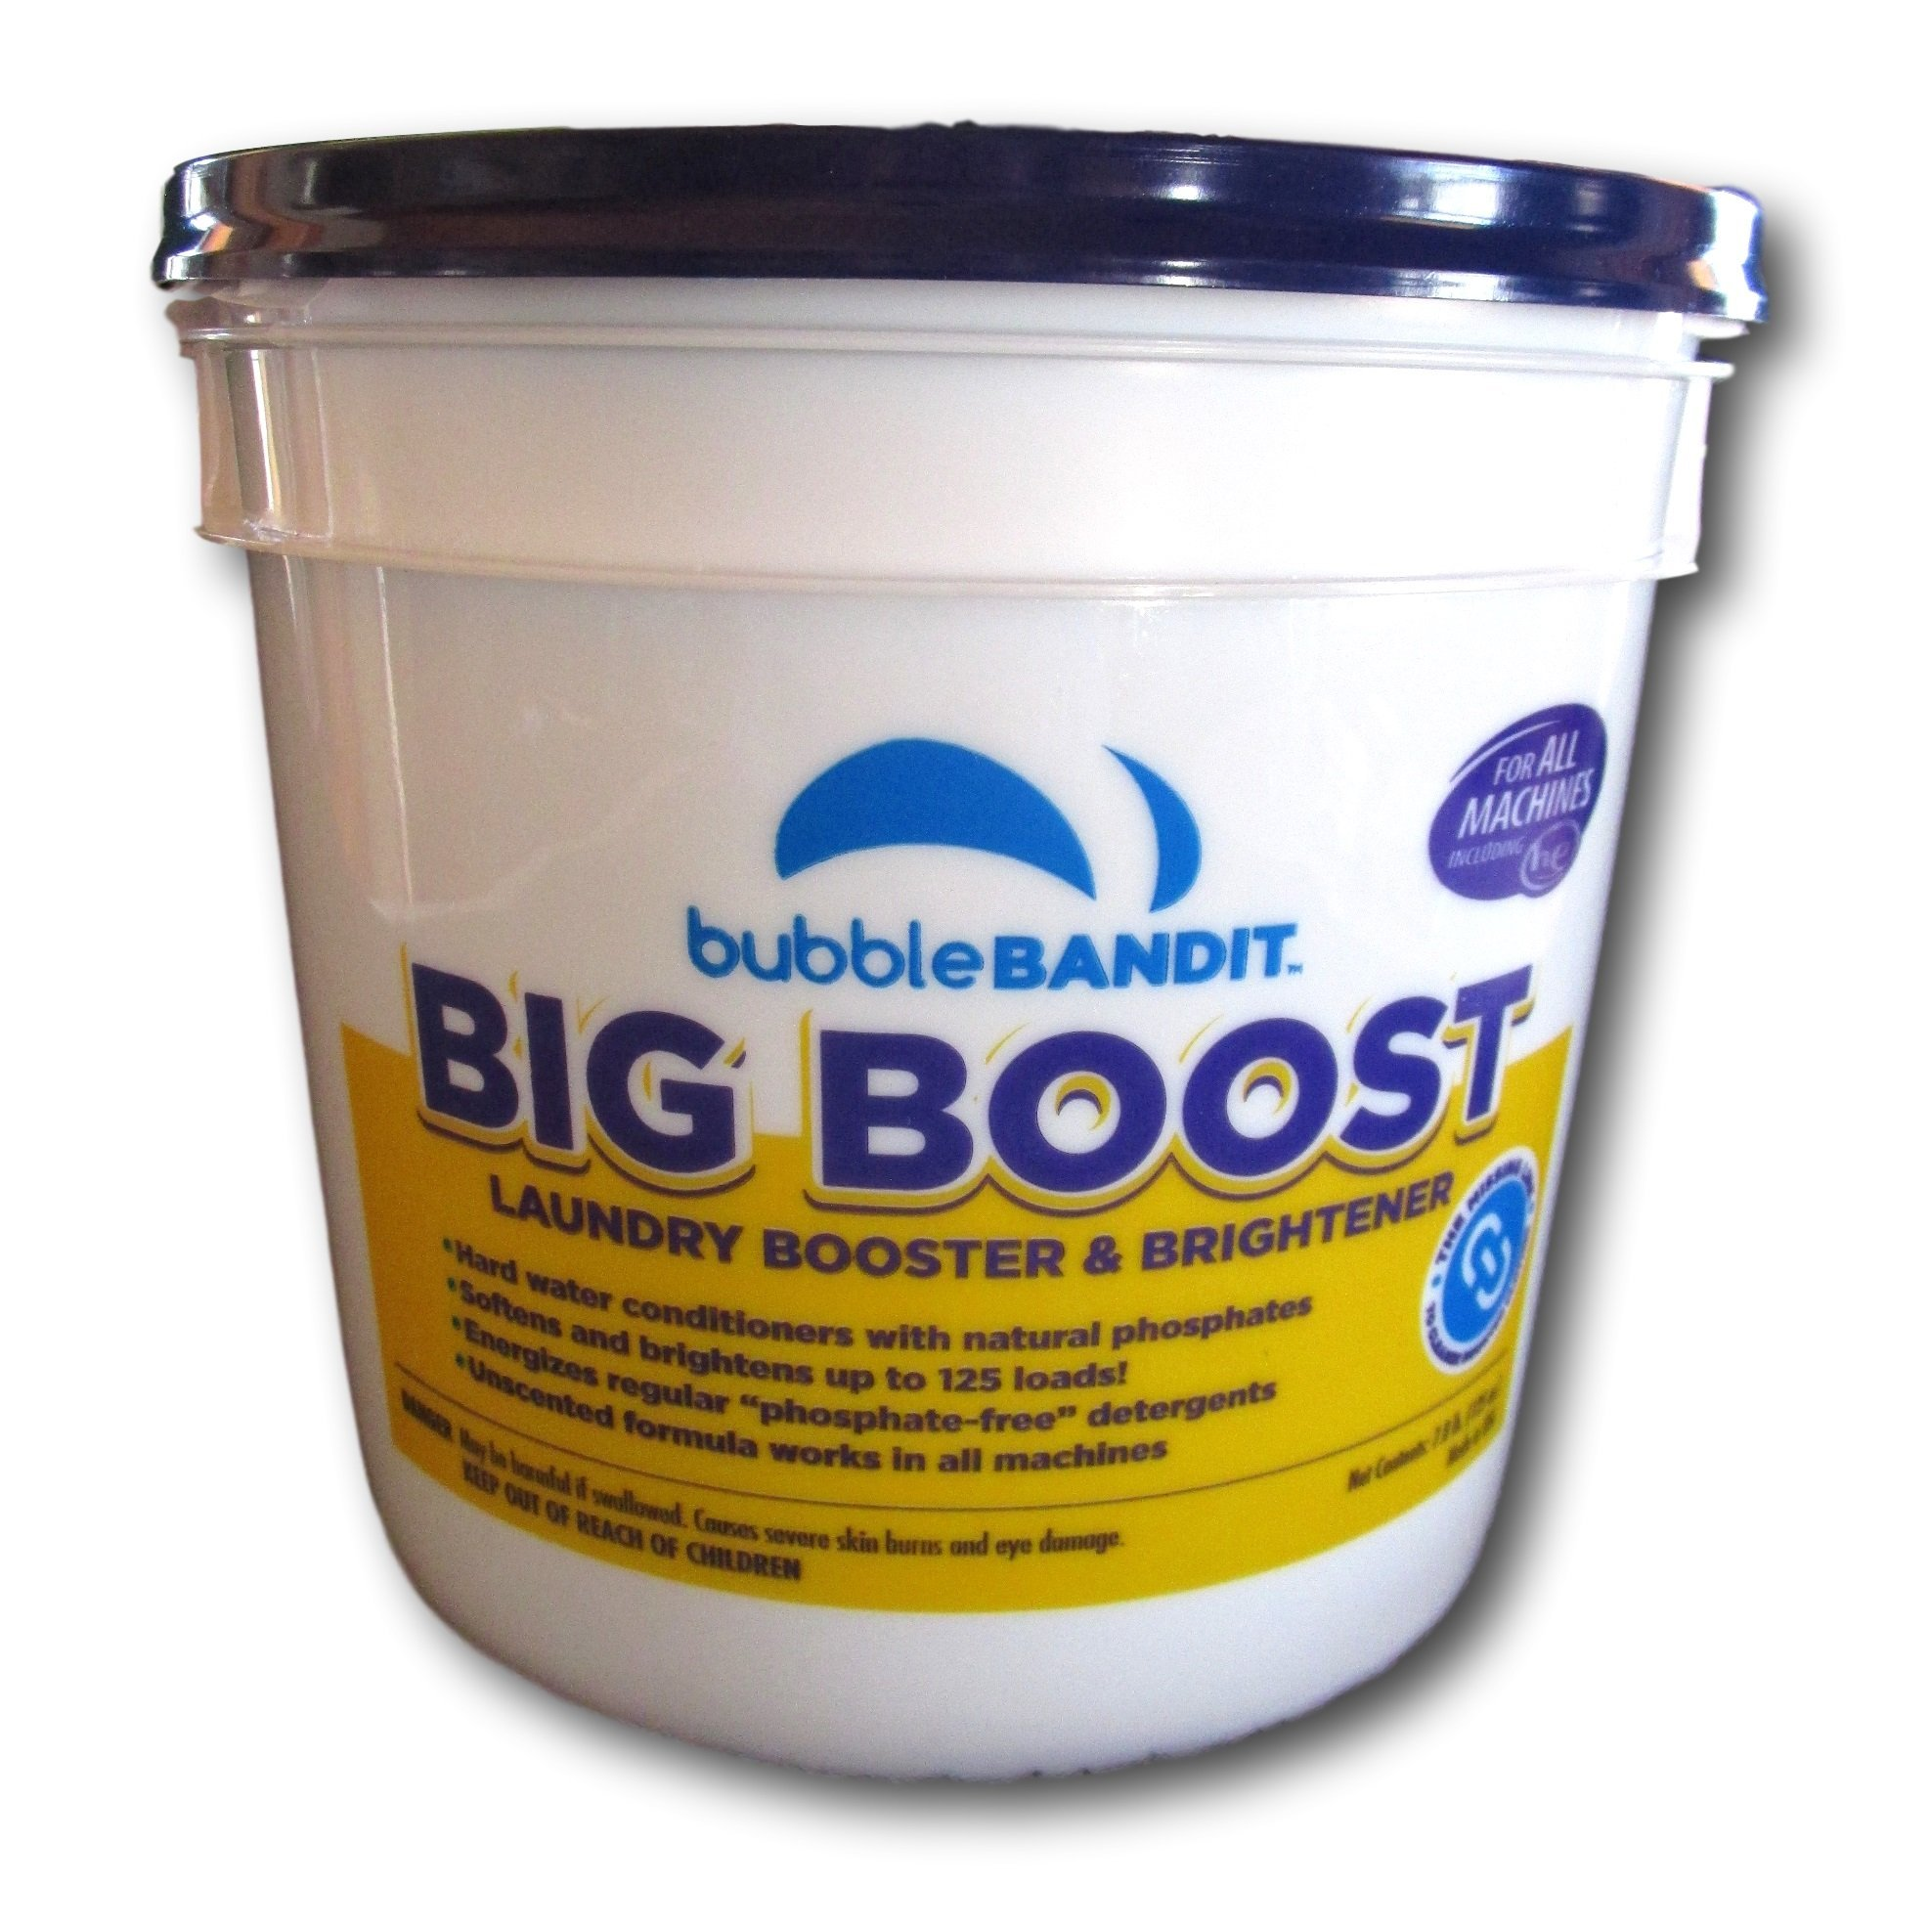 Bubble Bandit Big Boost Hard Water Laundry Brightener with Natural Phosphates. 125 Loads in a 7.8 lb Pail